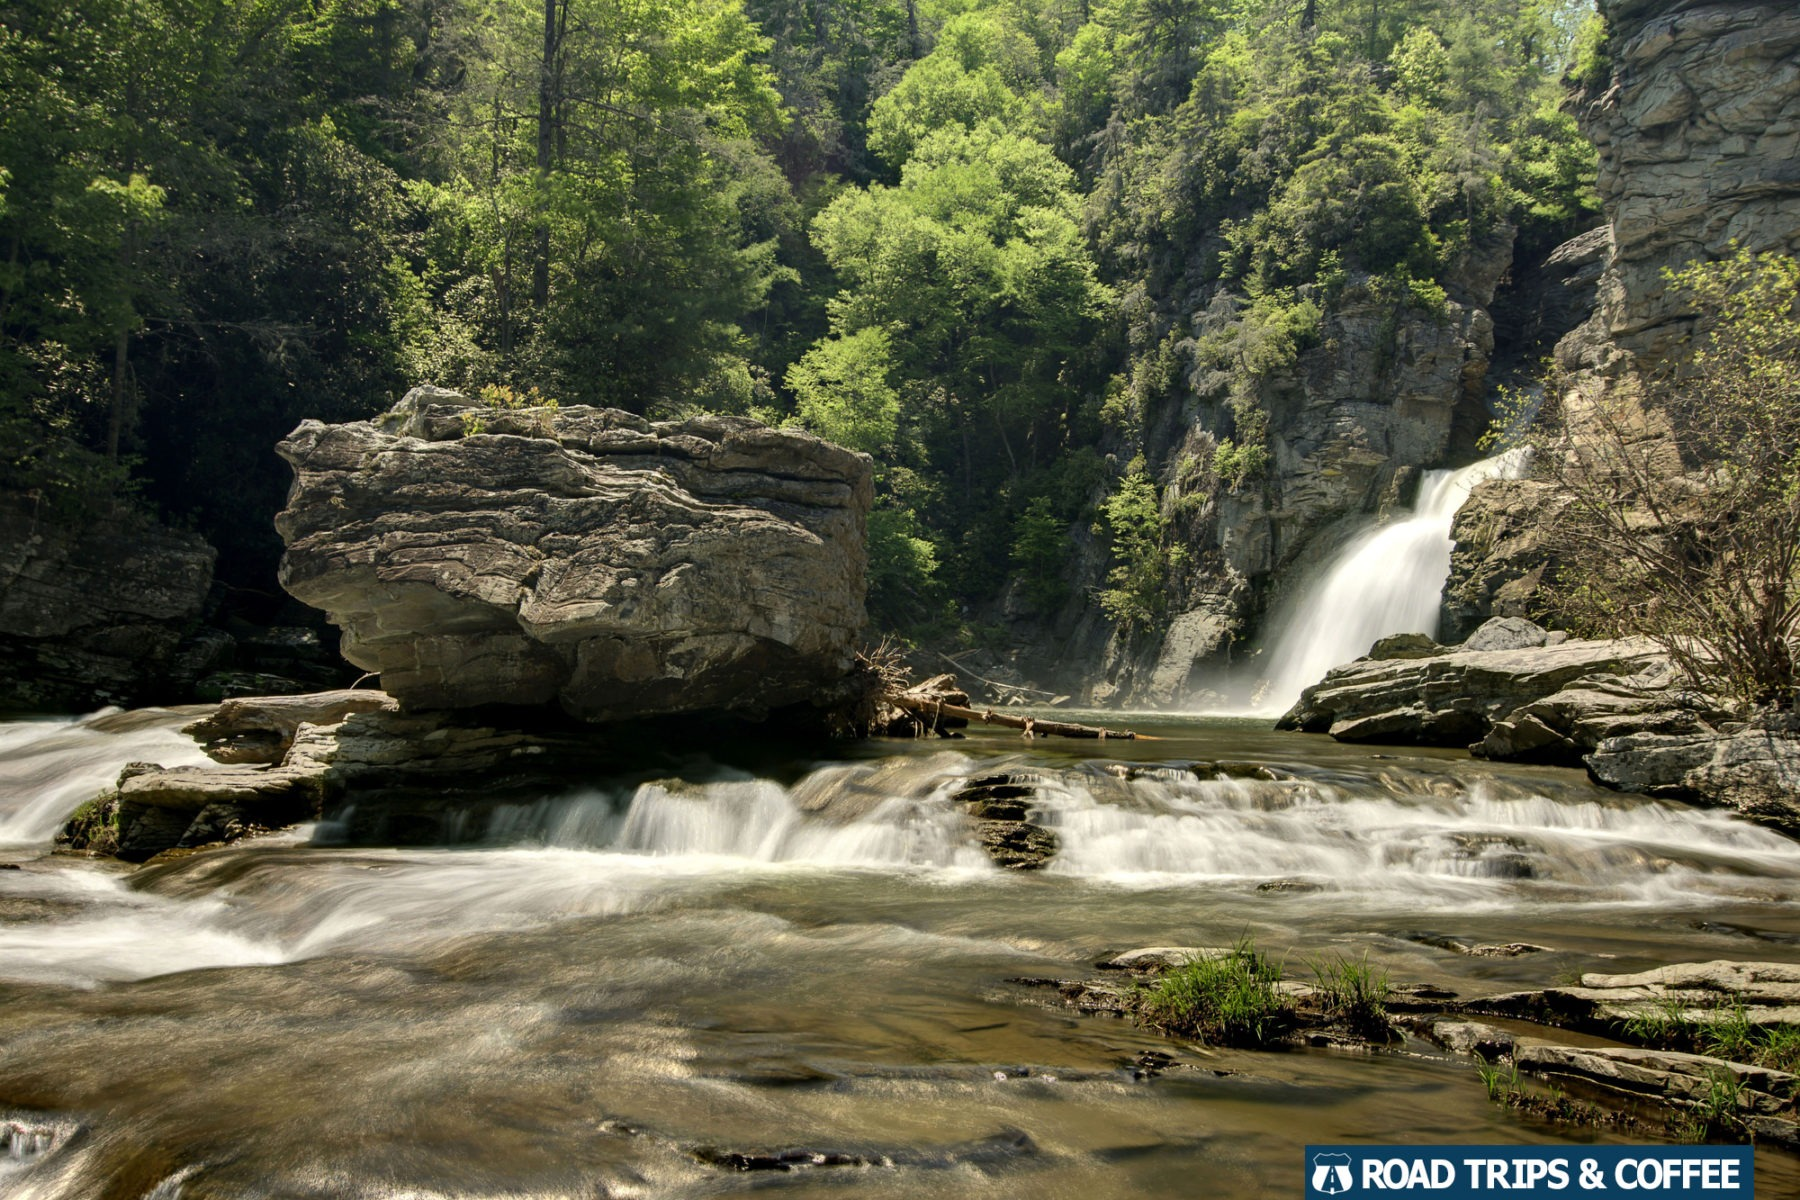 The base of Linville Falls on the Blue Ridge Parkway in North Carolina